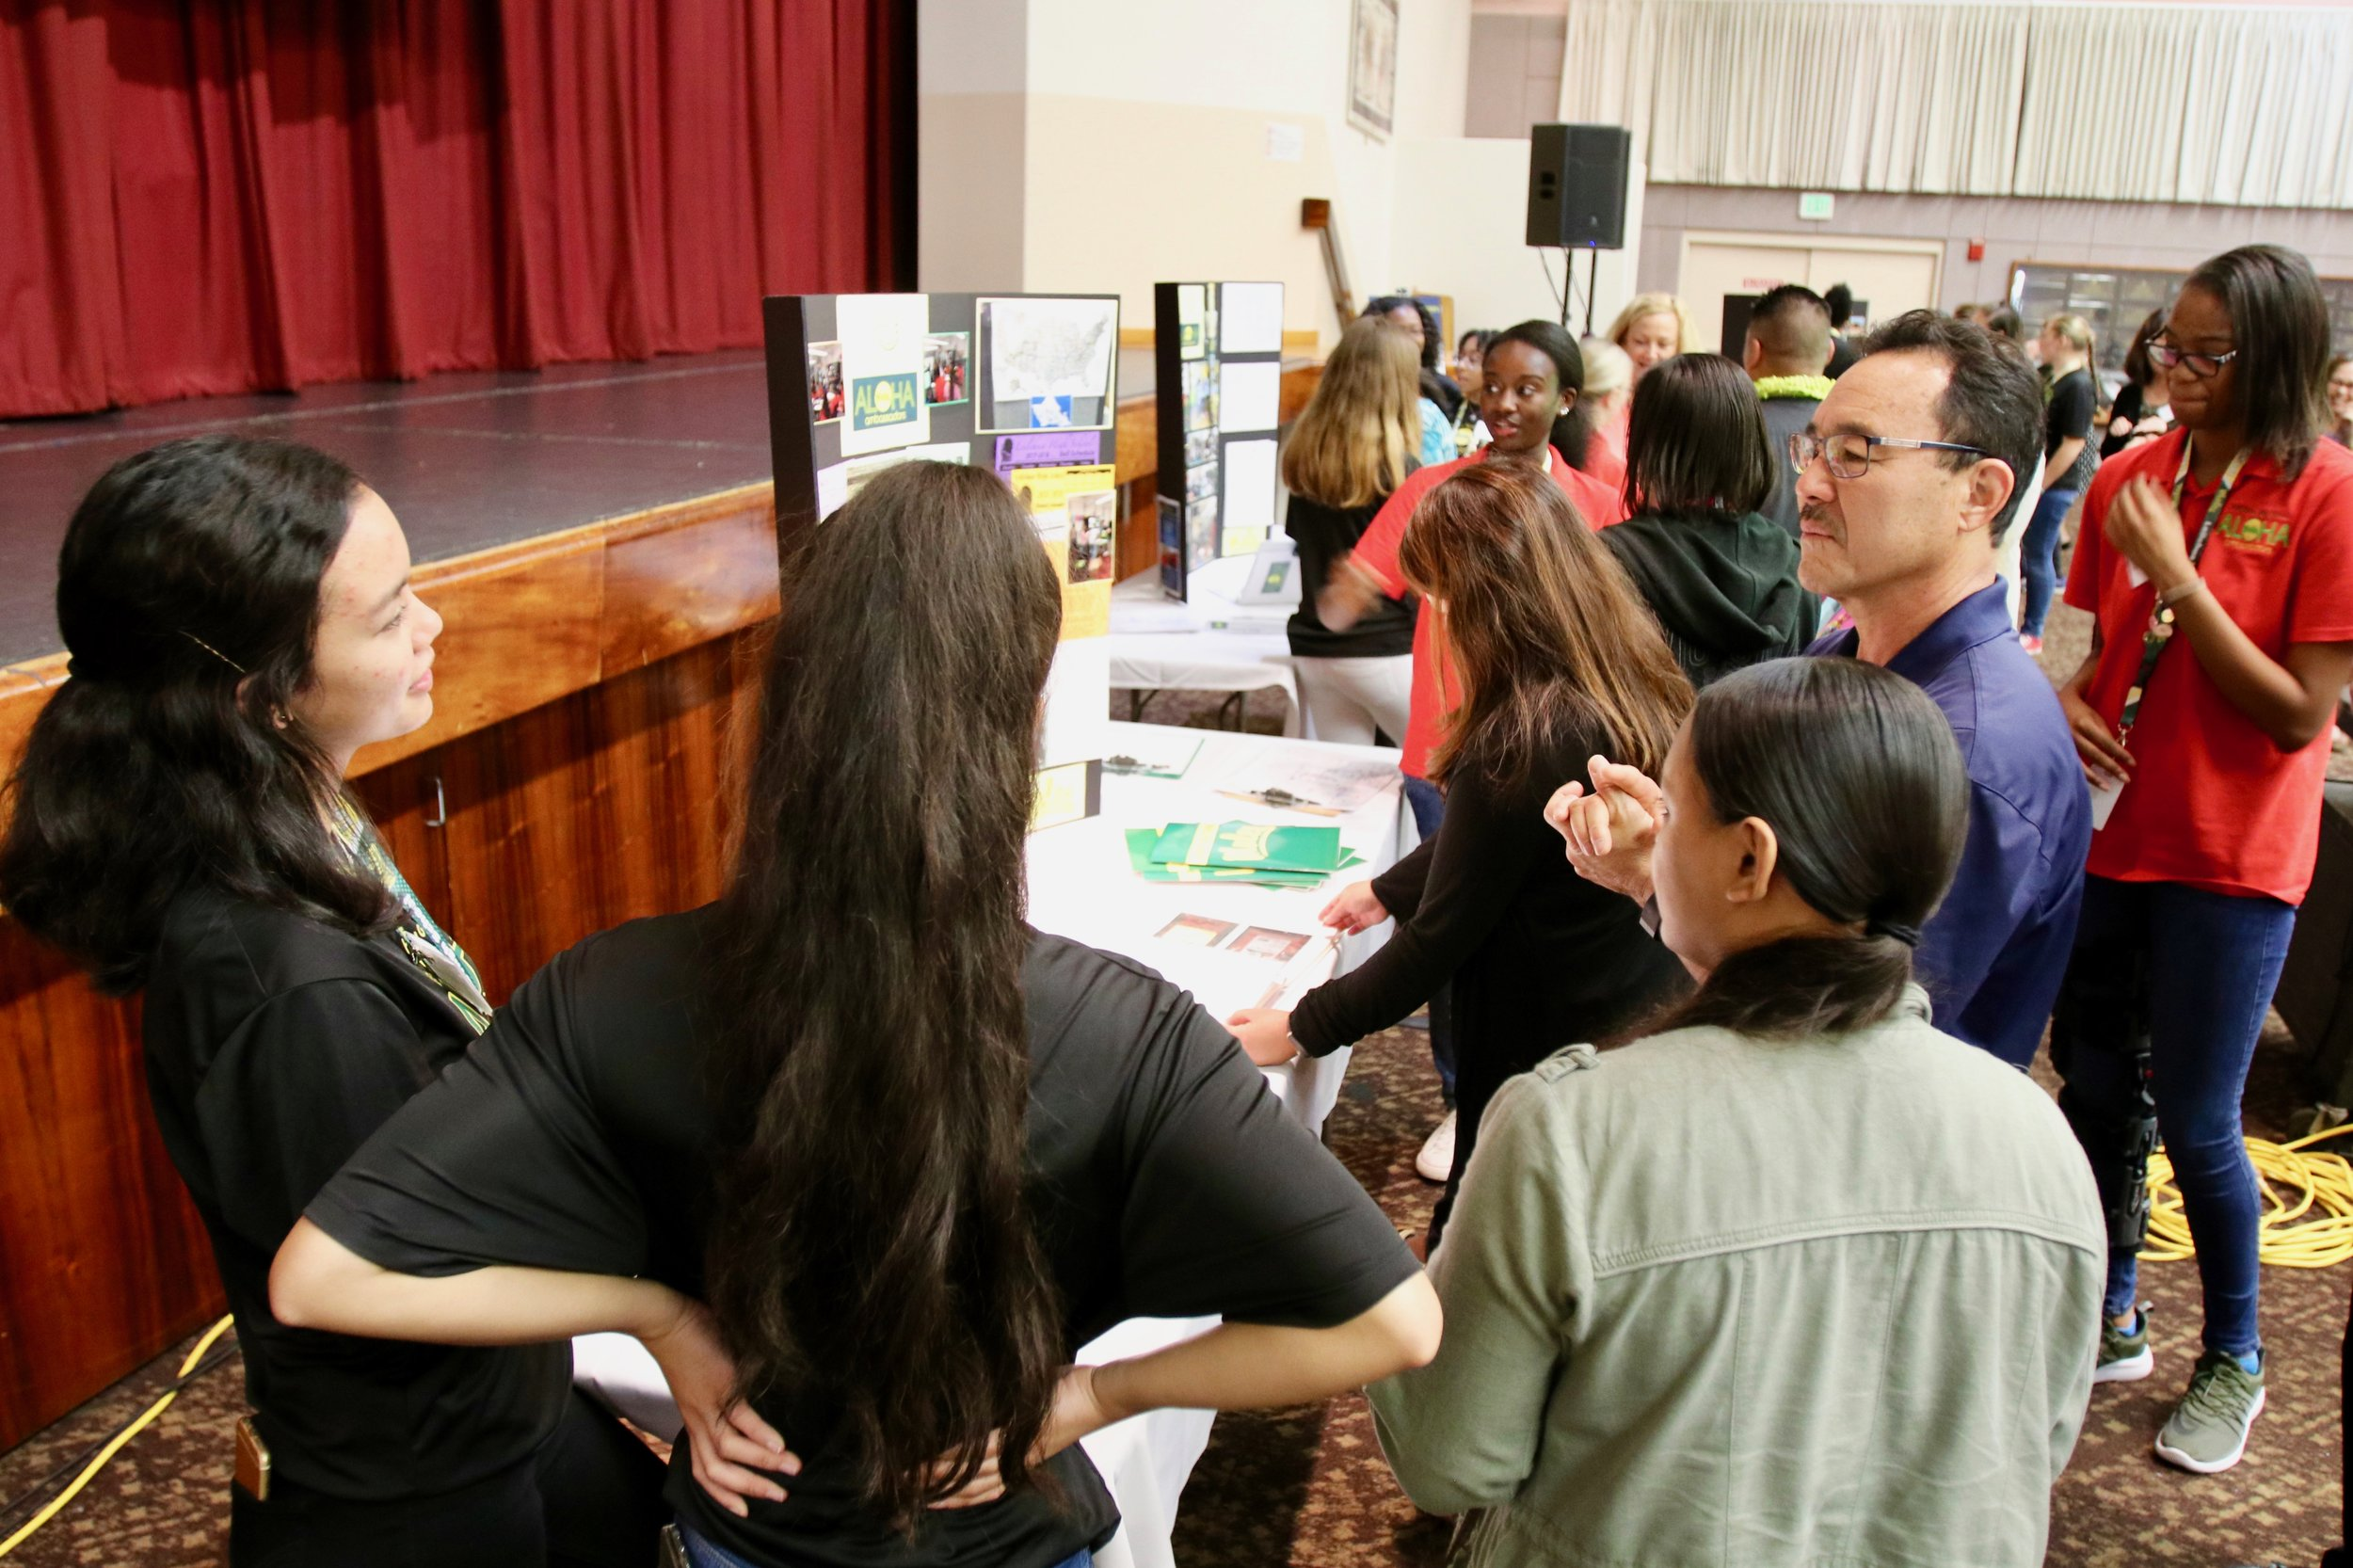 Leilehua High School student ambassadors share their transition center's program with intrigued listeners.